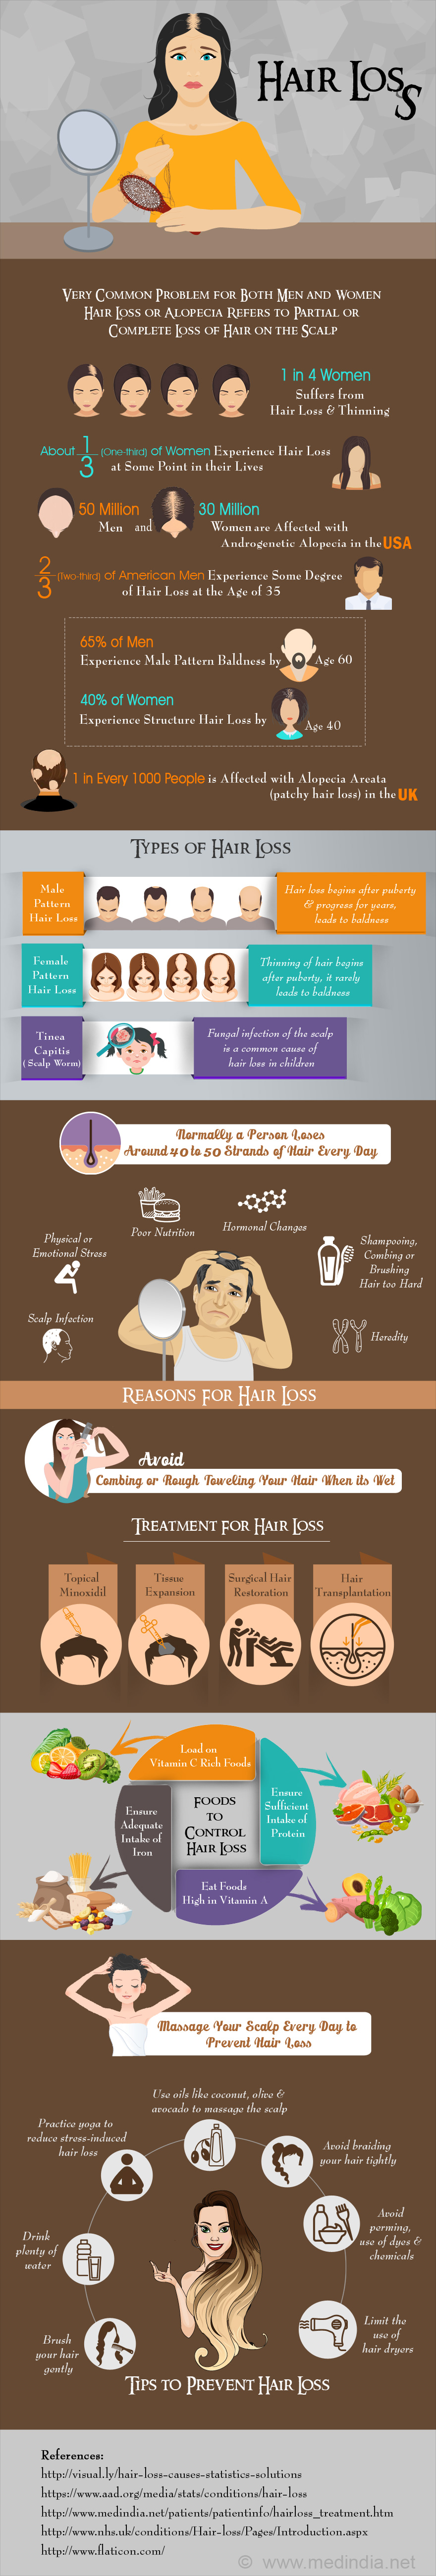 Hair Loss - Infographic